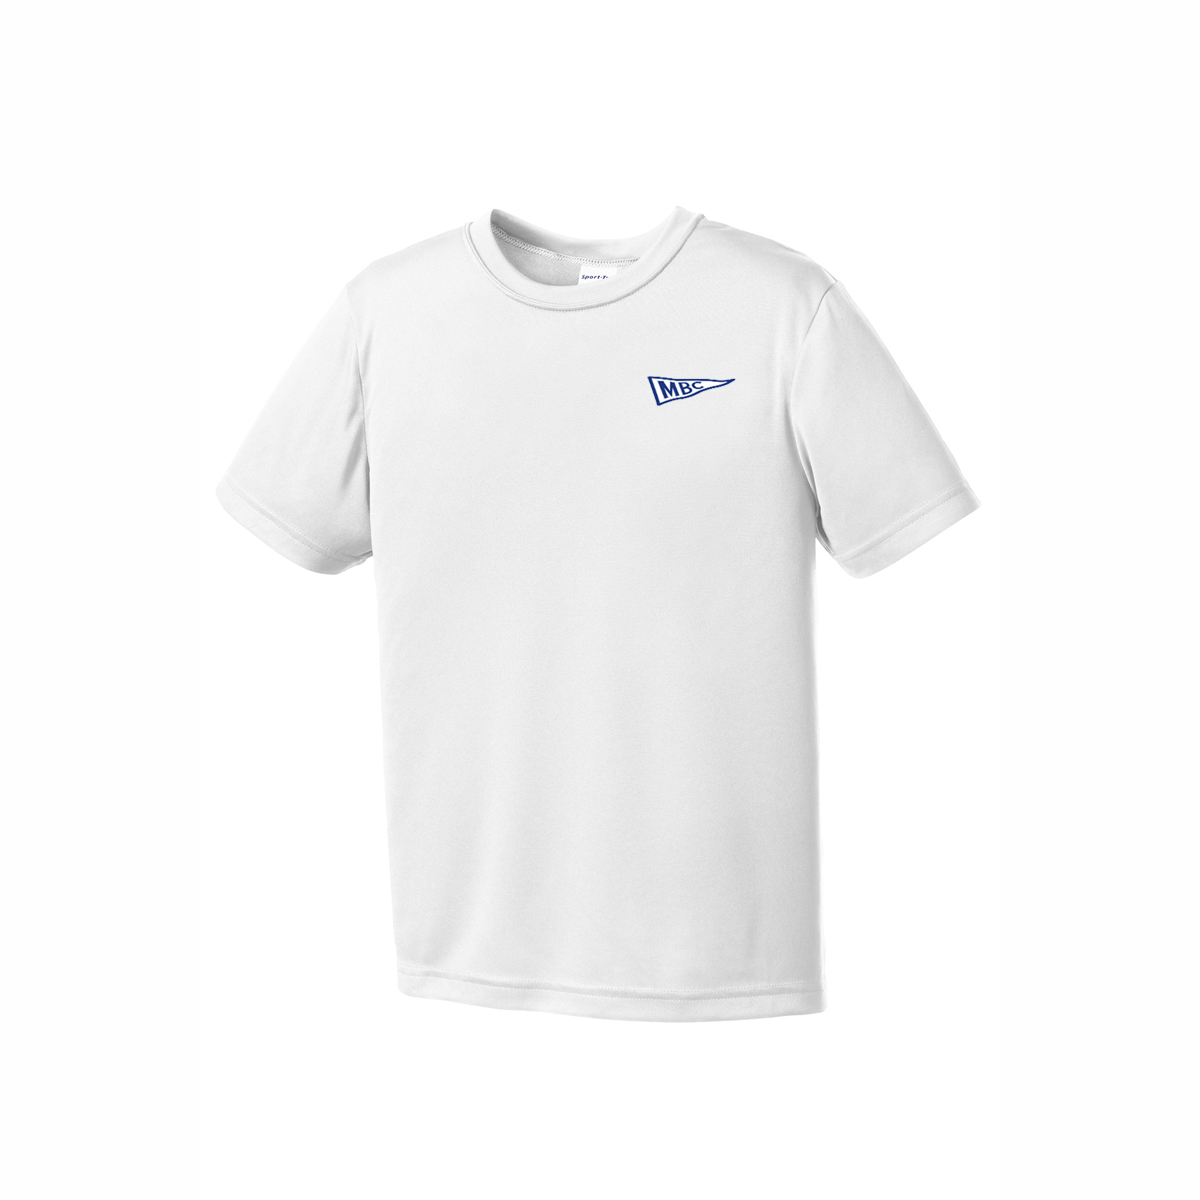 Monmouth Boat Club - Kid's Short Sleeve Tech Tee